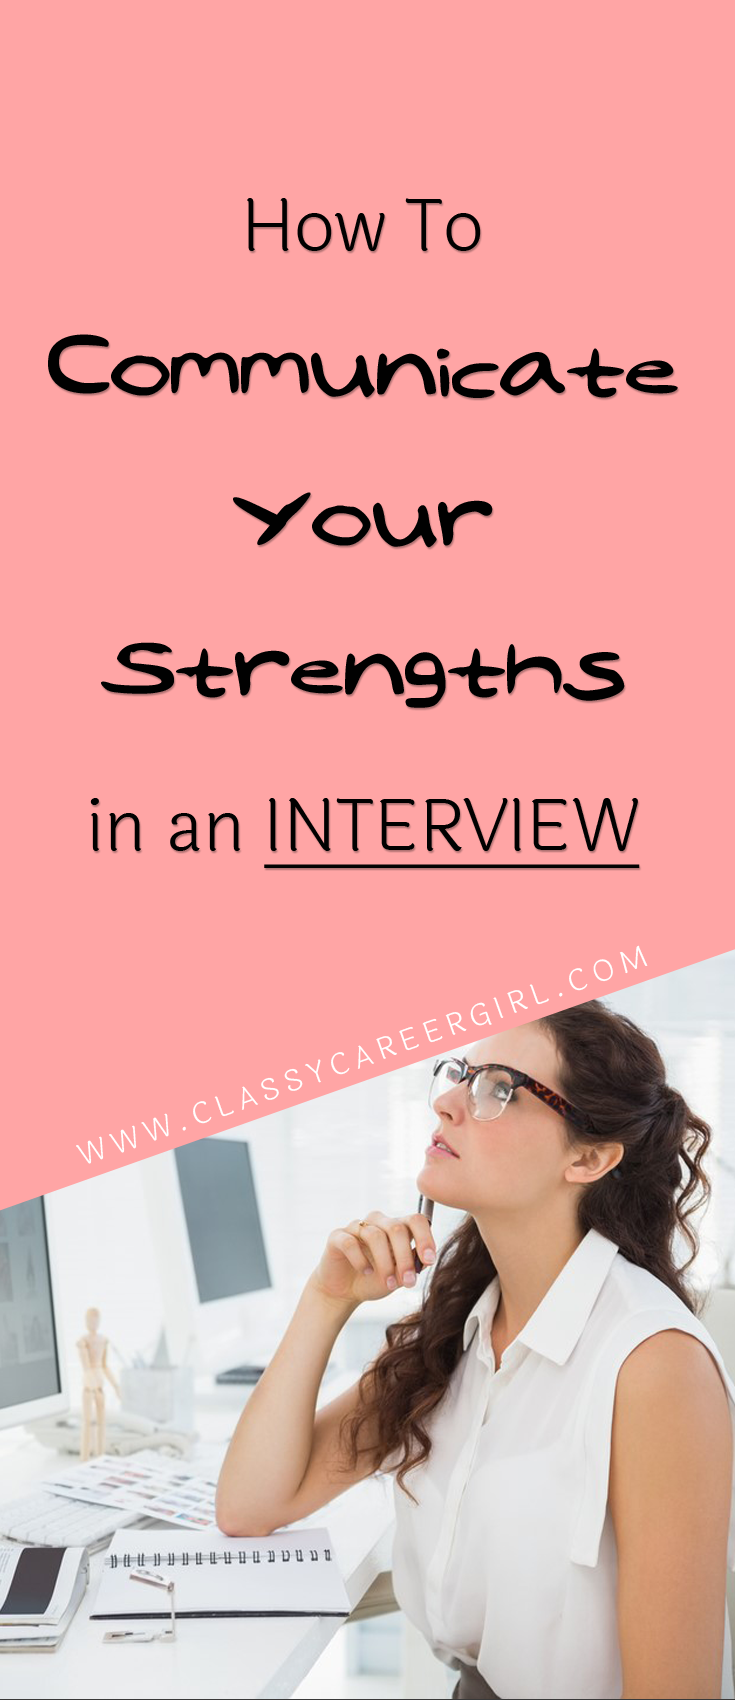 how to communicate your strengths in an interview interview i how to communicate your strengths in an interview how to communicate your strengths in an interview